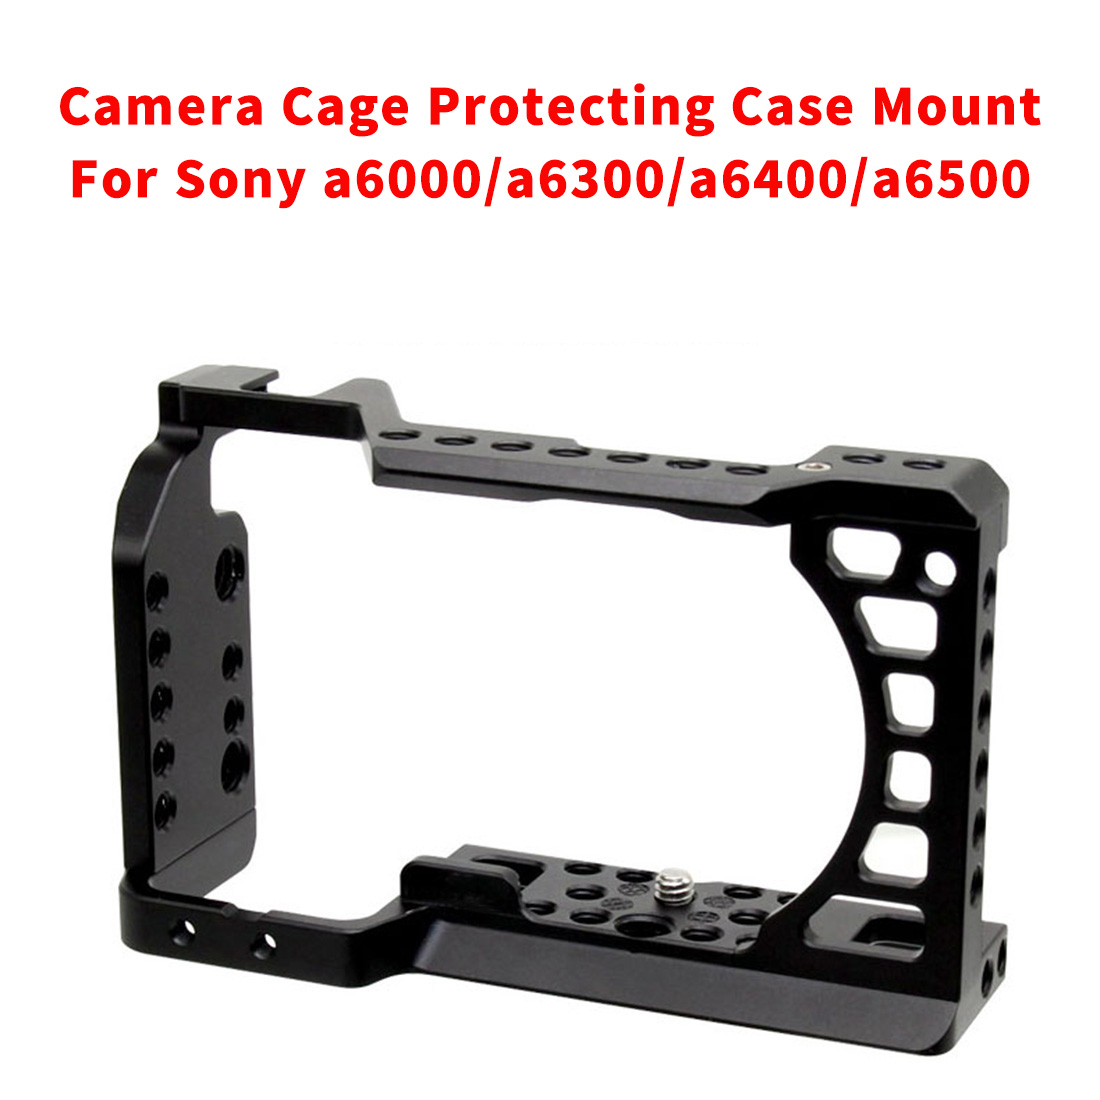 CNC Aluminum Camera Cage For SONY A6500/a6000/a6300/a6400/a6500 DLSR Protecting Case Mount Expansion Cover Quick-Rease Plate Kit